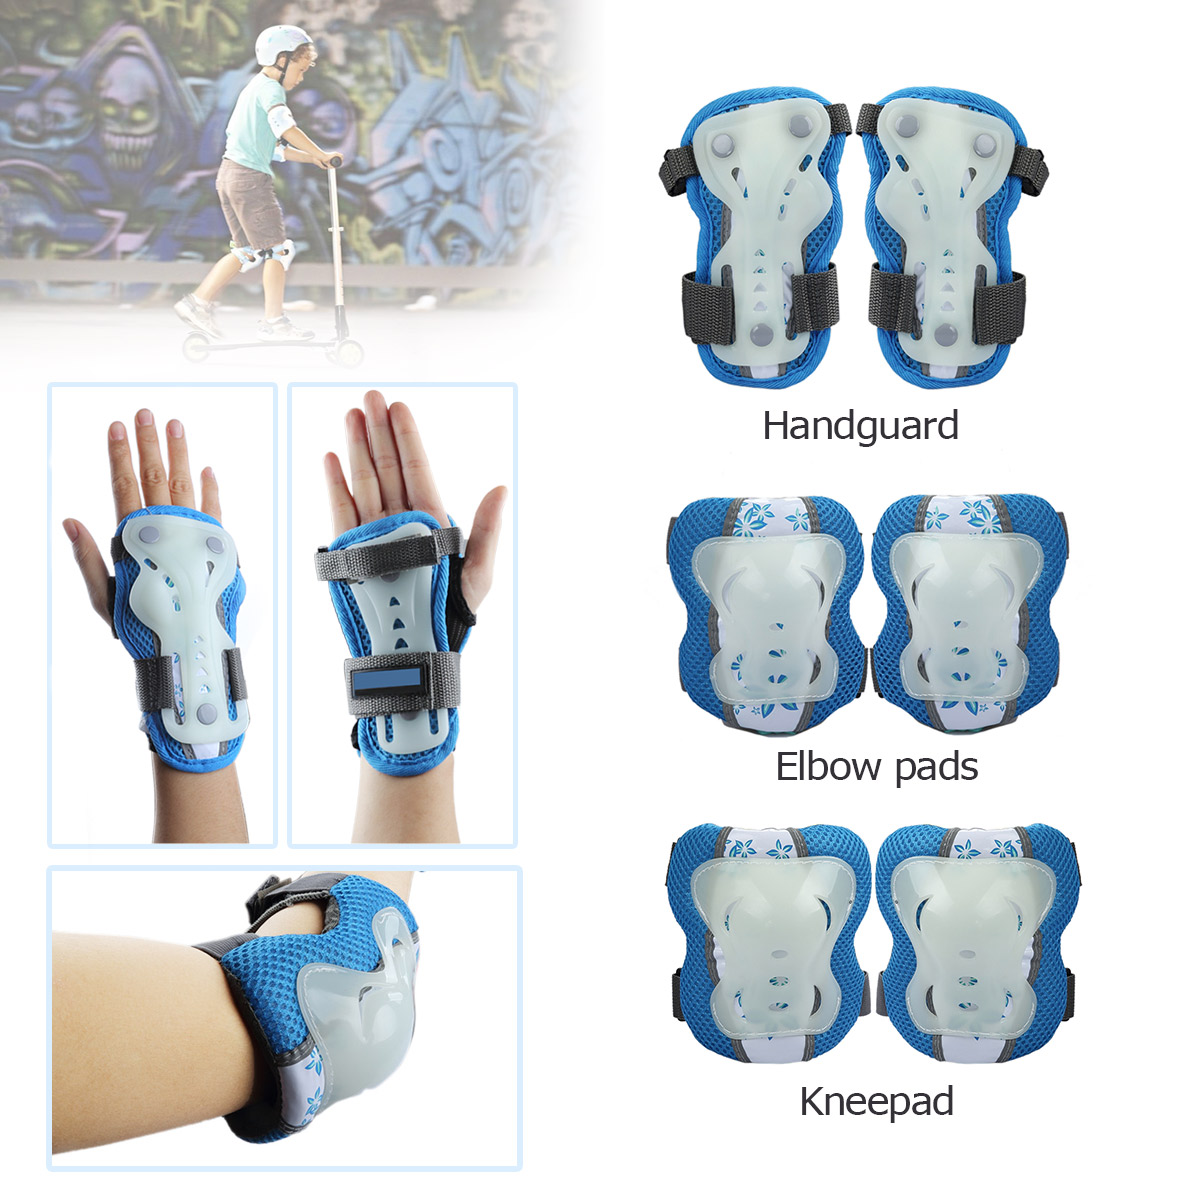 Kids Cycling Riding Protective Gear Set, Knee and Elbow Pads with Wrist Guards for Cycling Skating BMX by Besmall